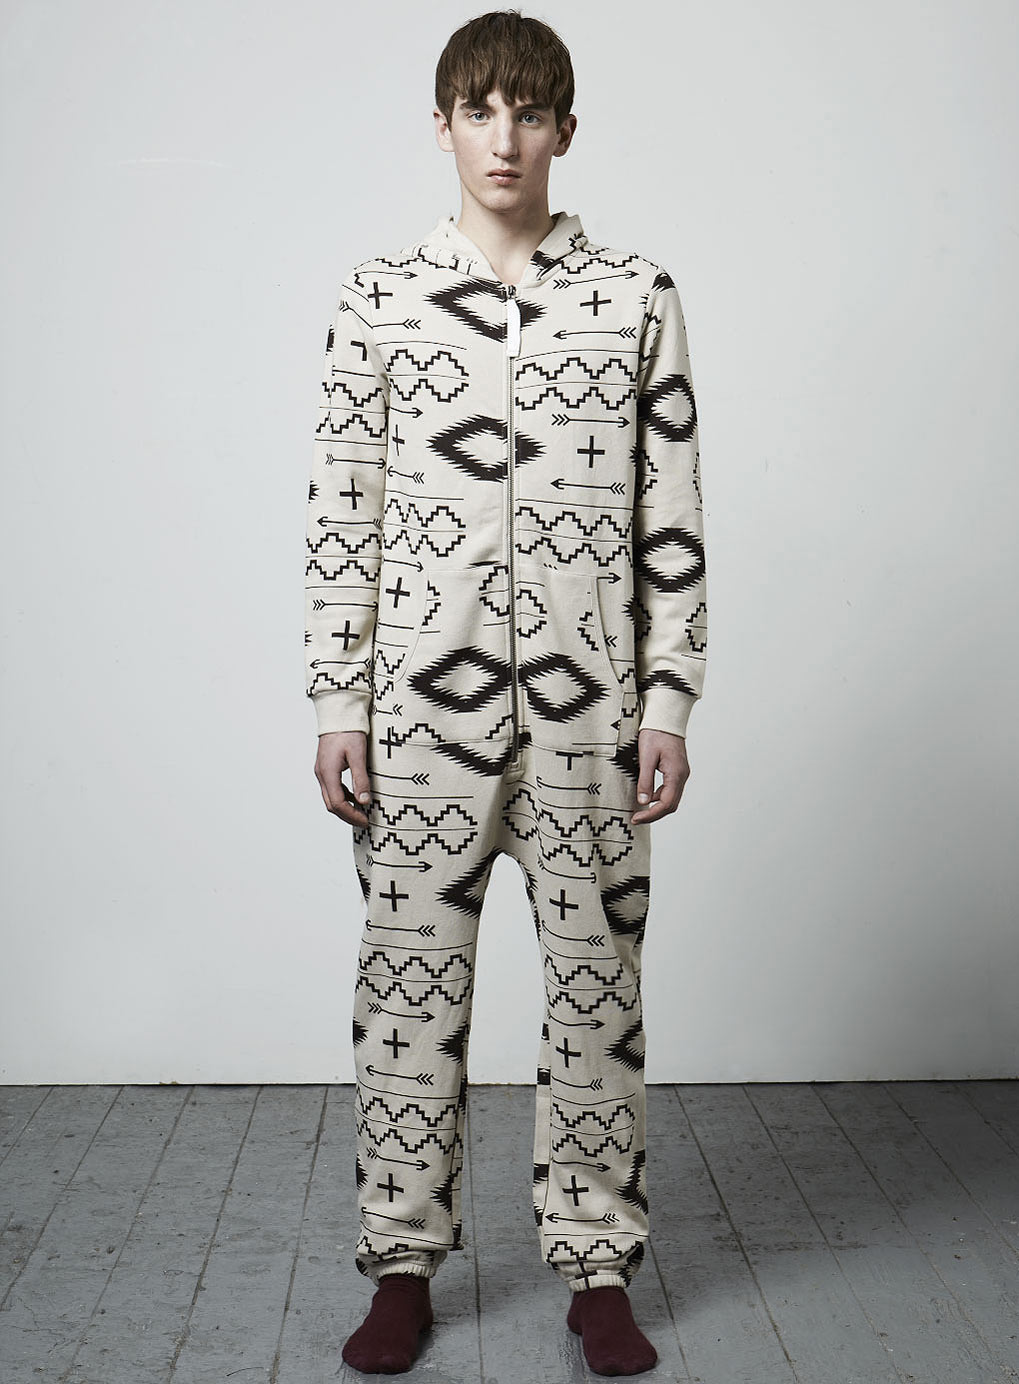 Topman has a Selection of Onesies